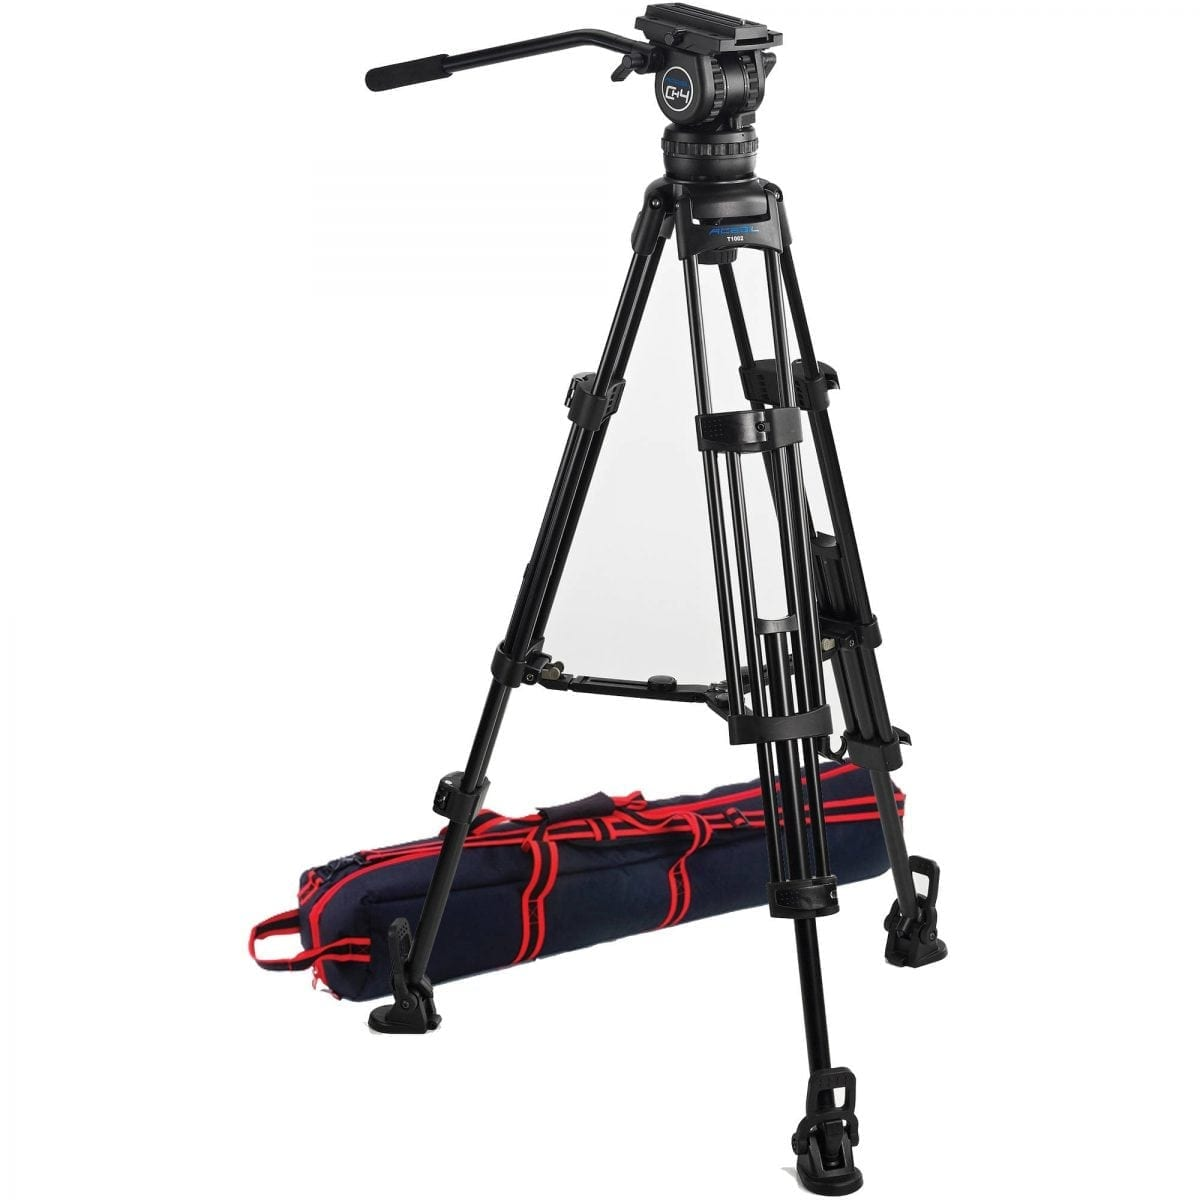 JVC CS-482M TWO STAGE TRIPOD KIT (26lb. LOAD) Front